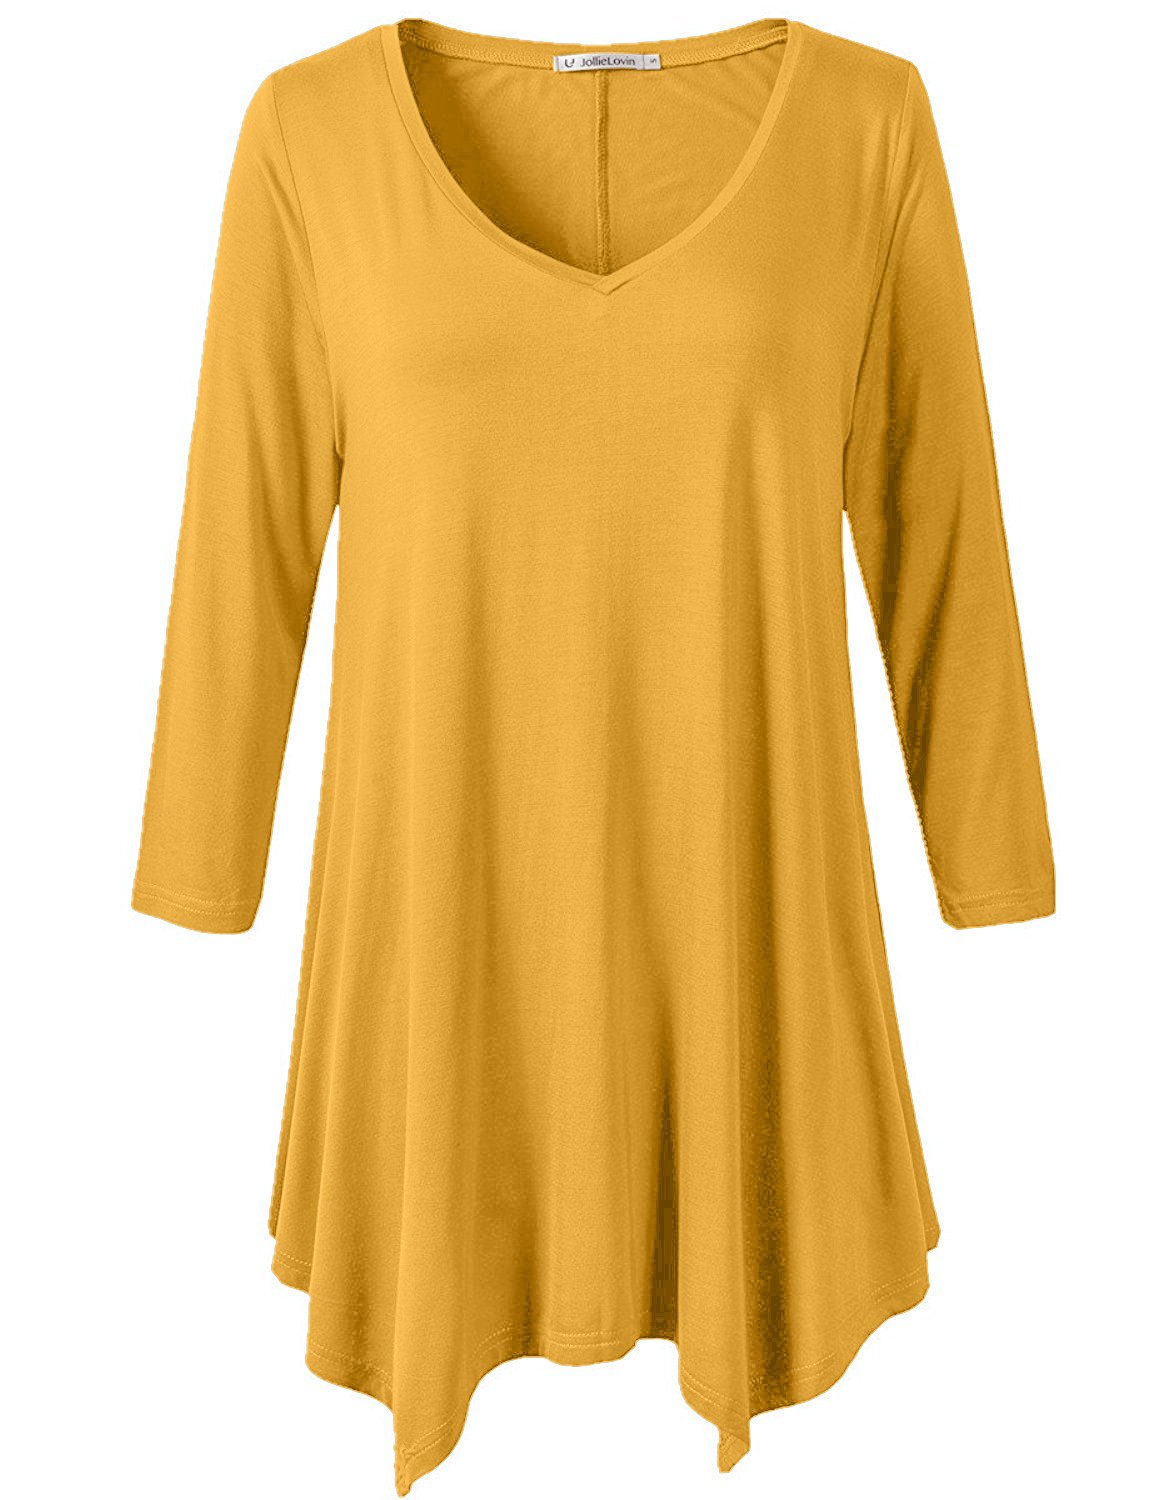 JollieLovin Womens Plus Size 3/4 Sleeve Loose-fit T Shirt for Leggings Tunic Top (Yellow, 1X)